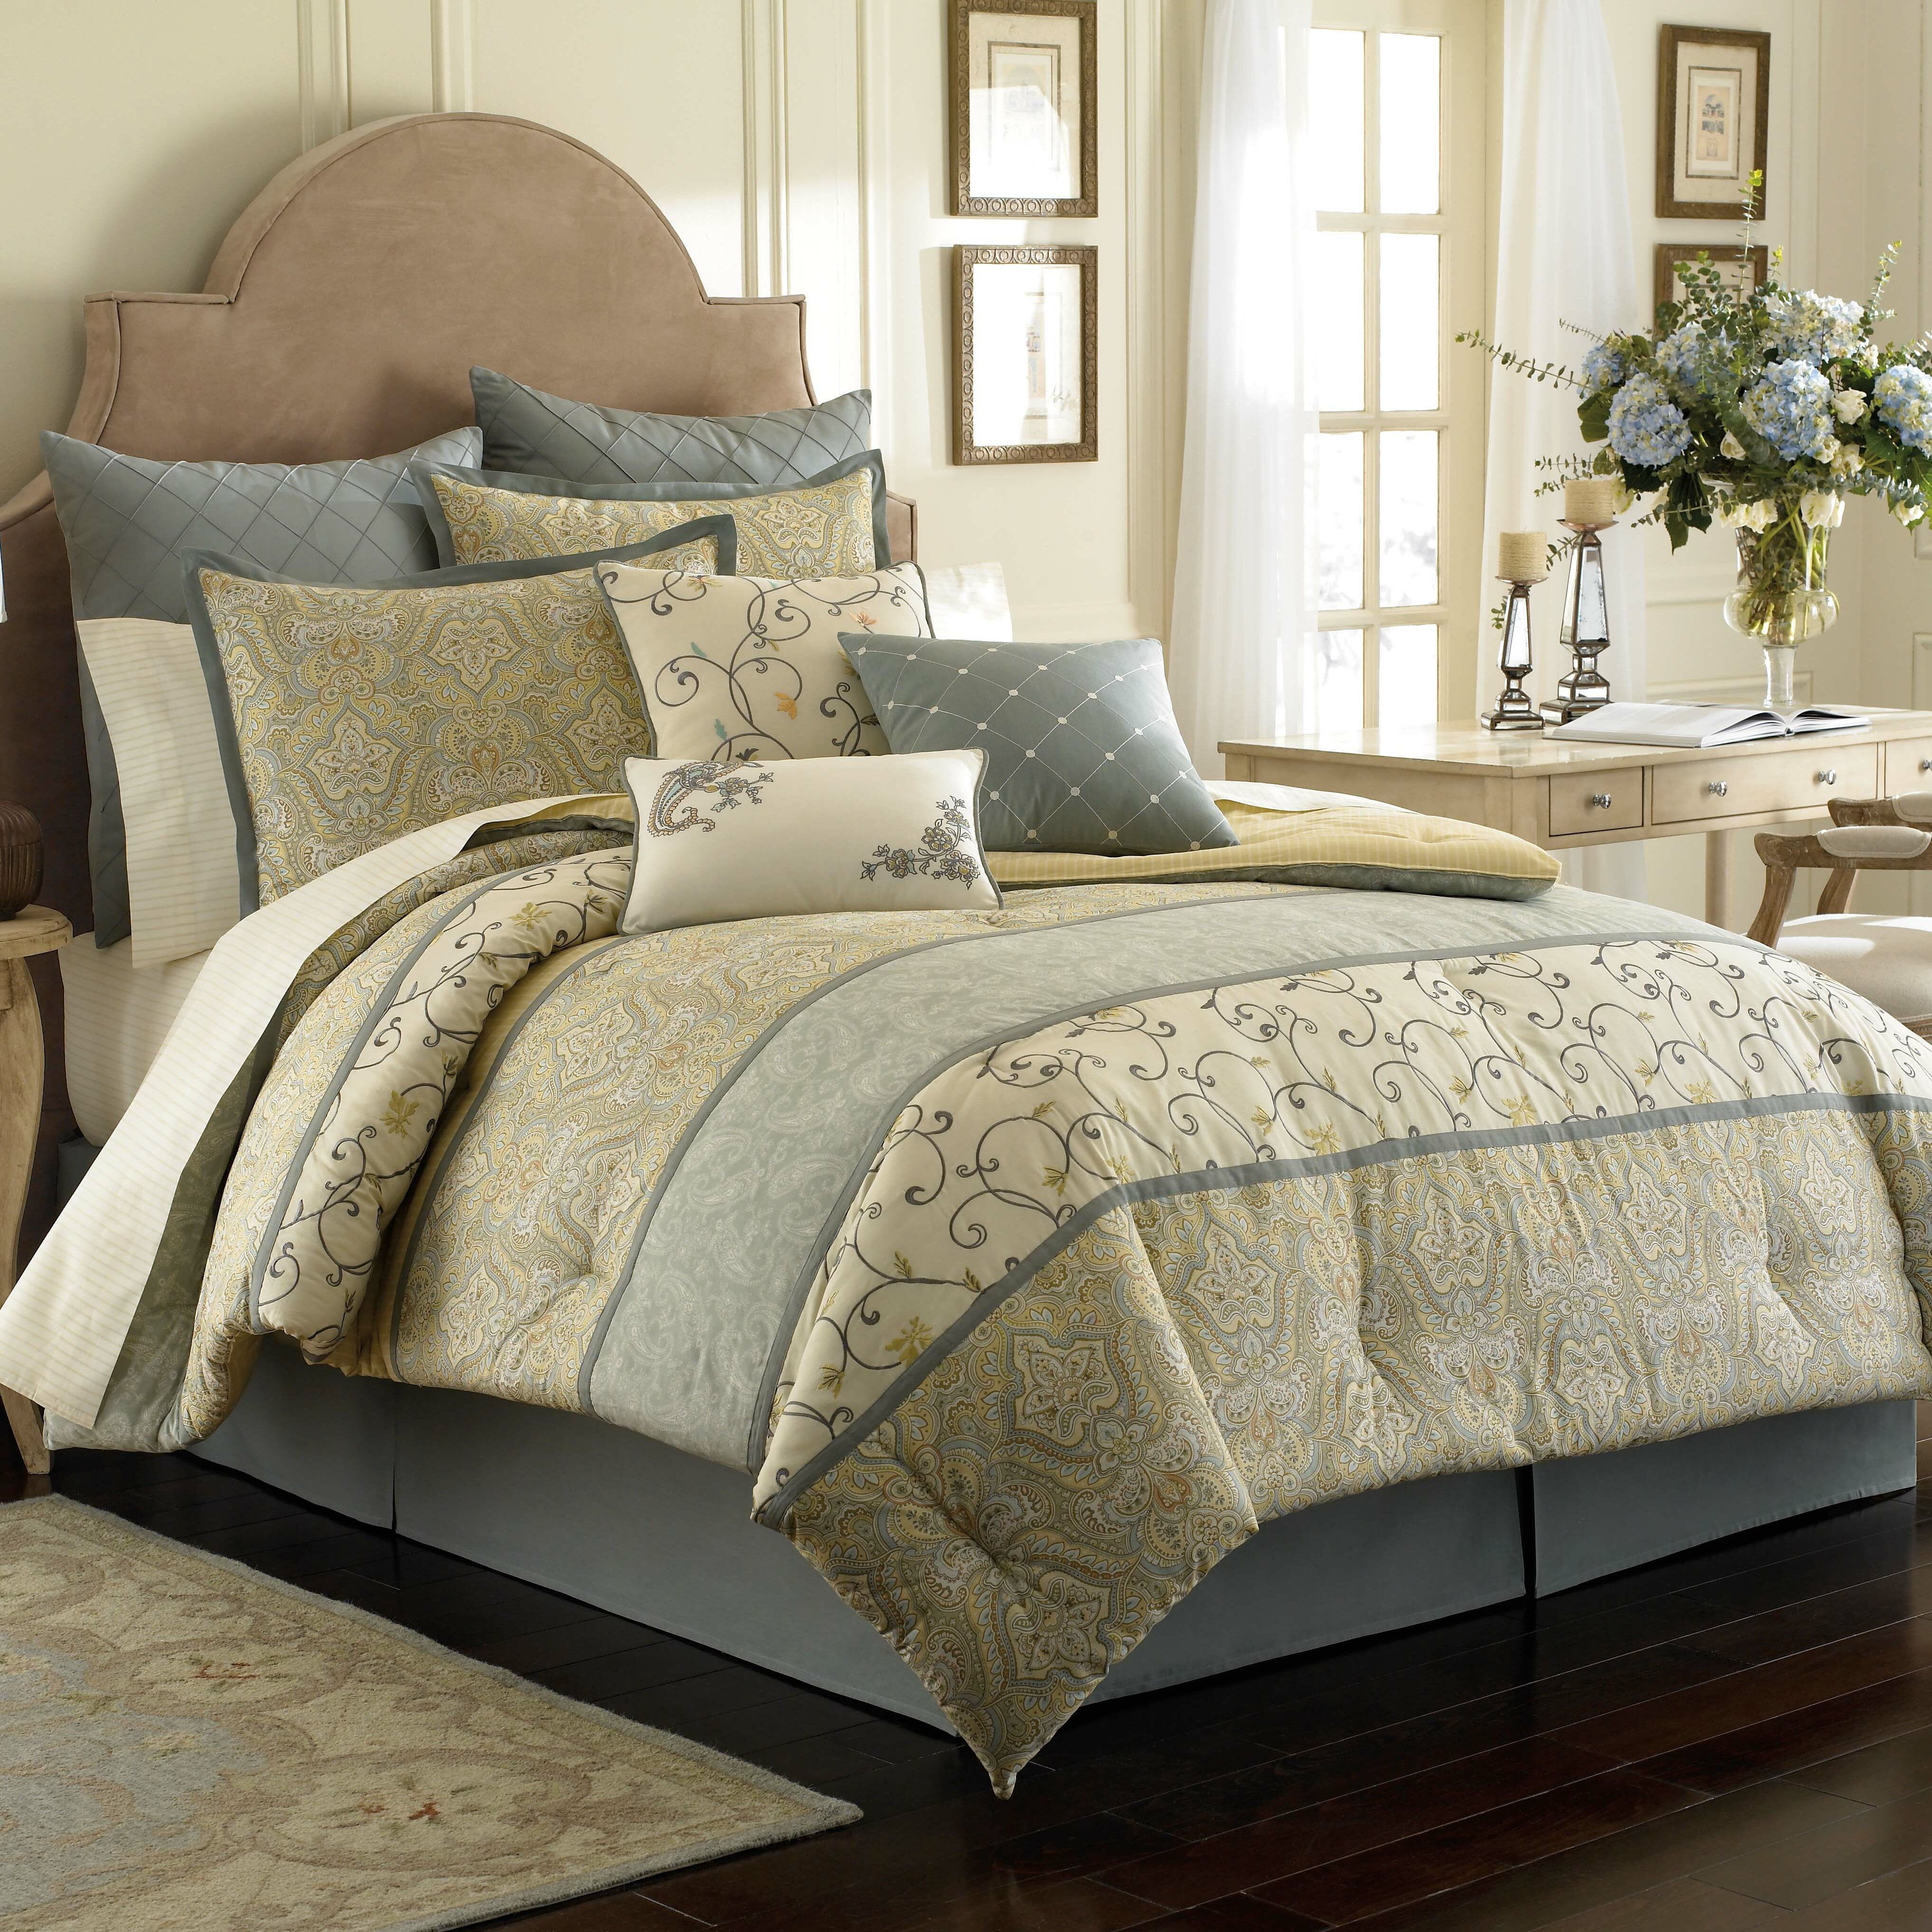 Laura Ashley Bedroom Furniture Beautiful Home Decor Beautifully Priced